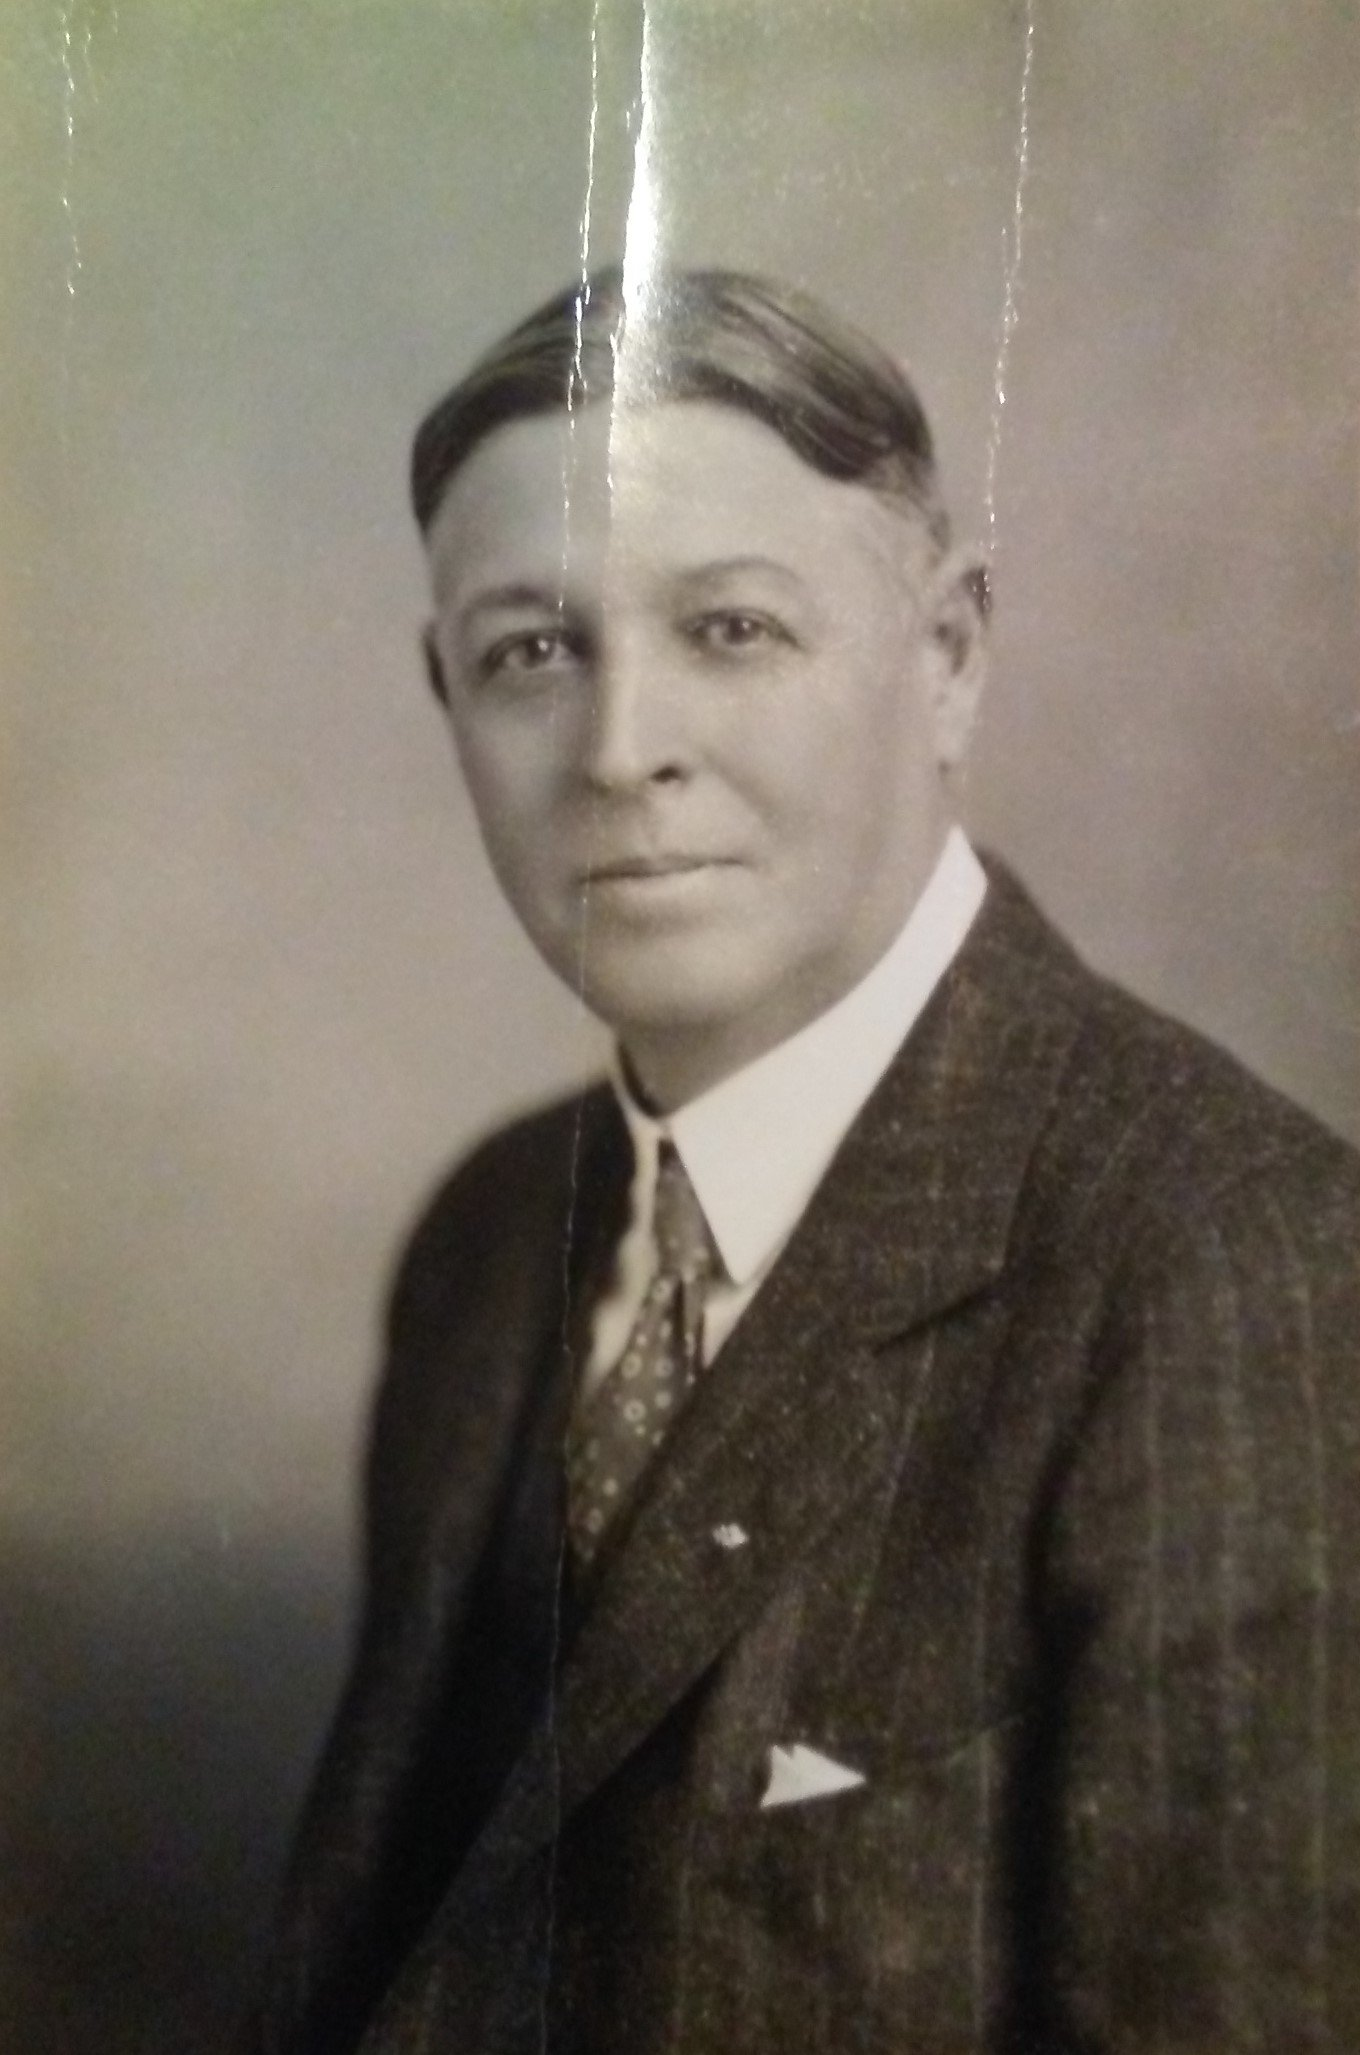 William Bennett Bizzell's picture printed in his book, The Relations of Learning, in 1934 during his presidency.